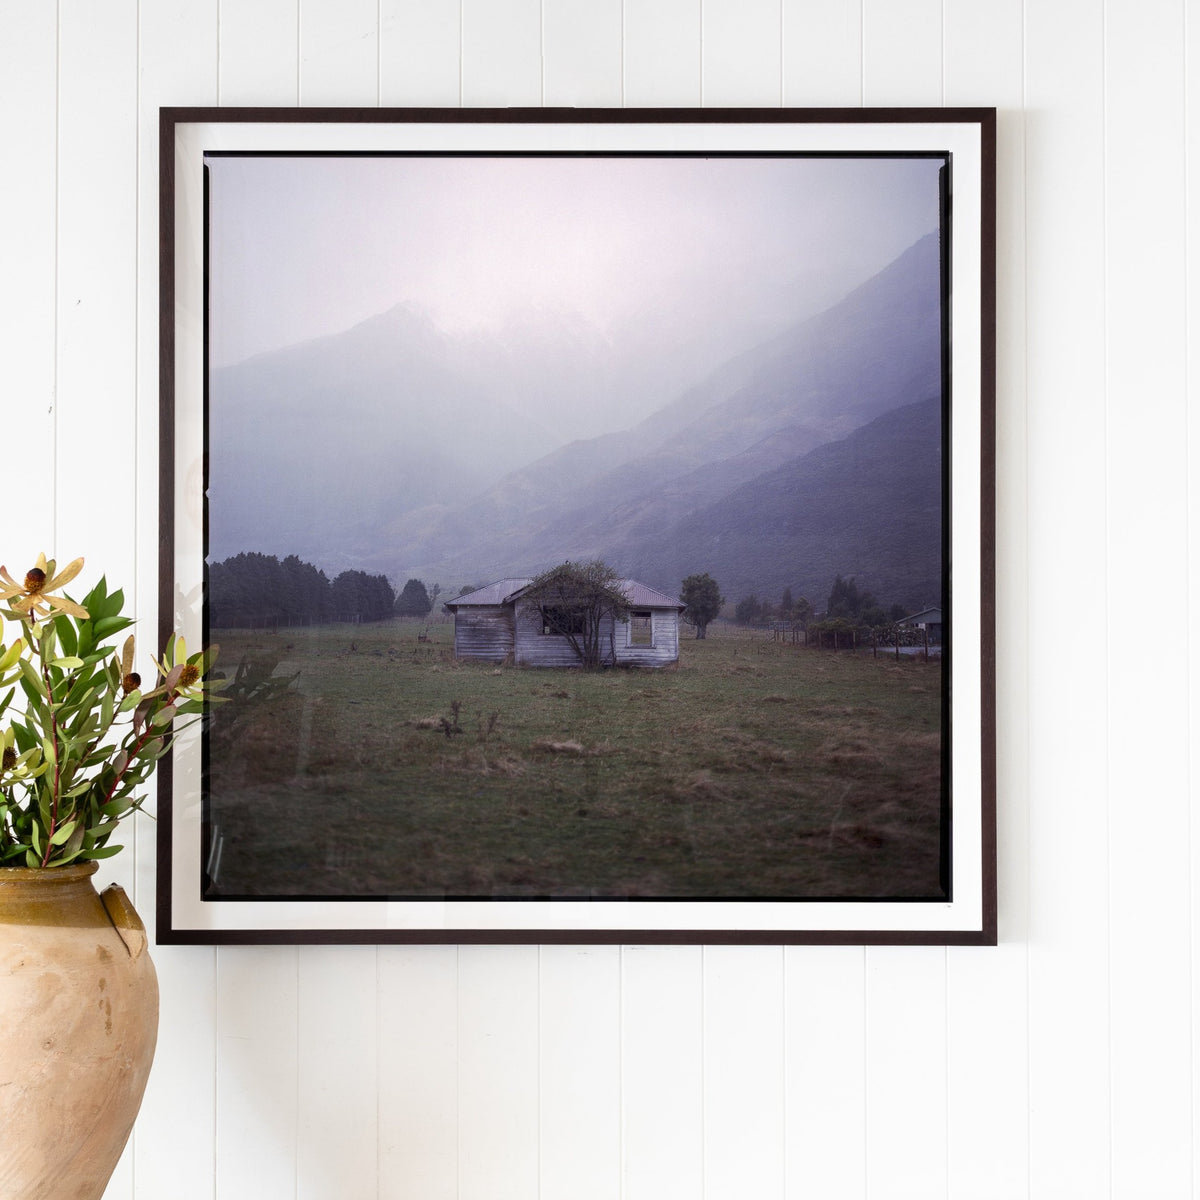 Load image into Gallery viewer, NZ Shack - Artwork - Original – Shoppe Amber Interiors